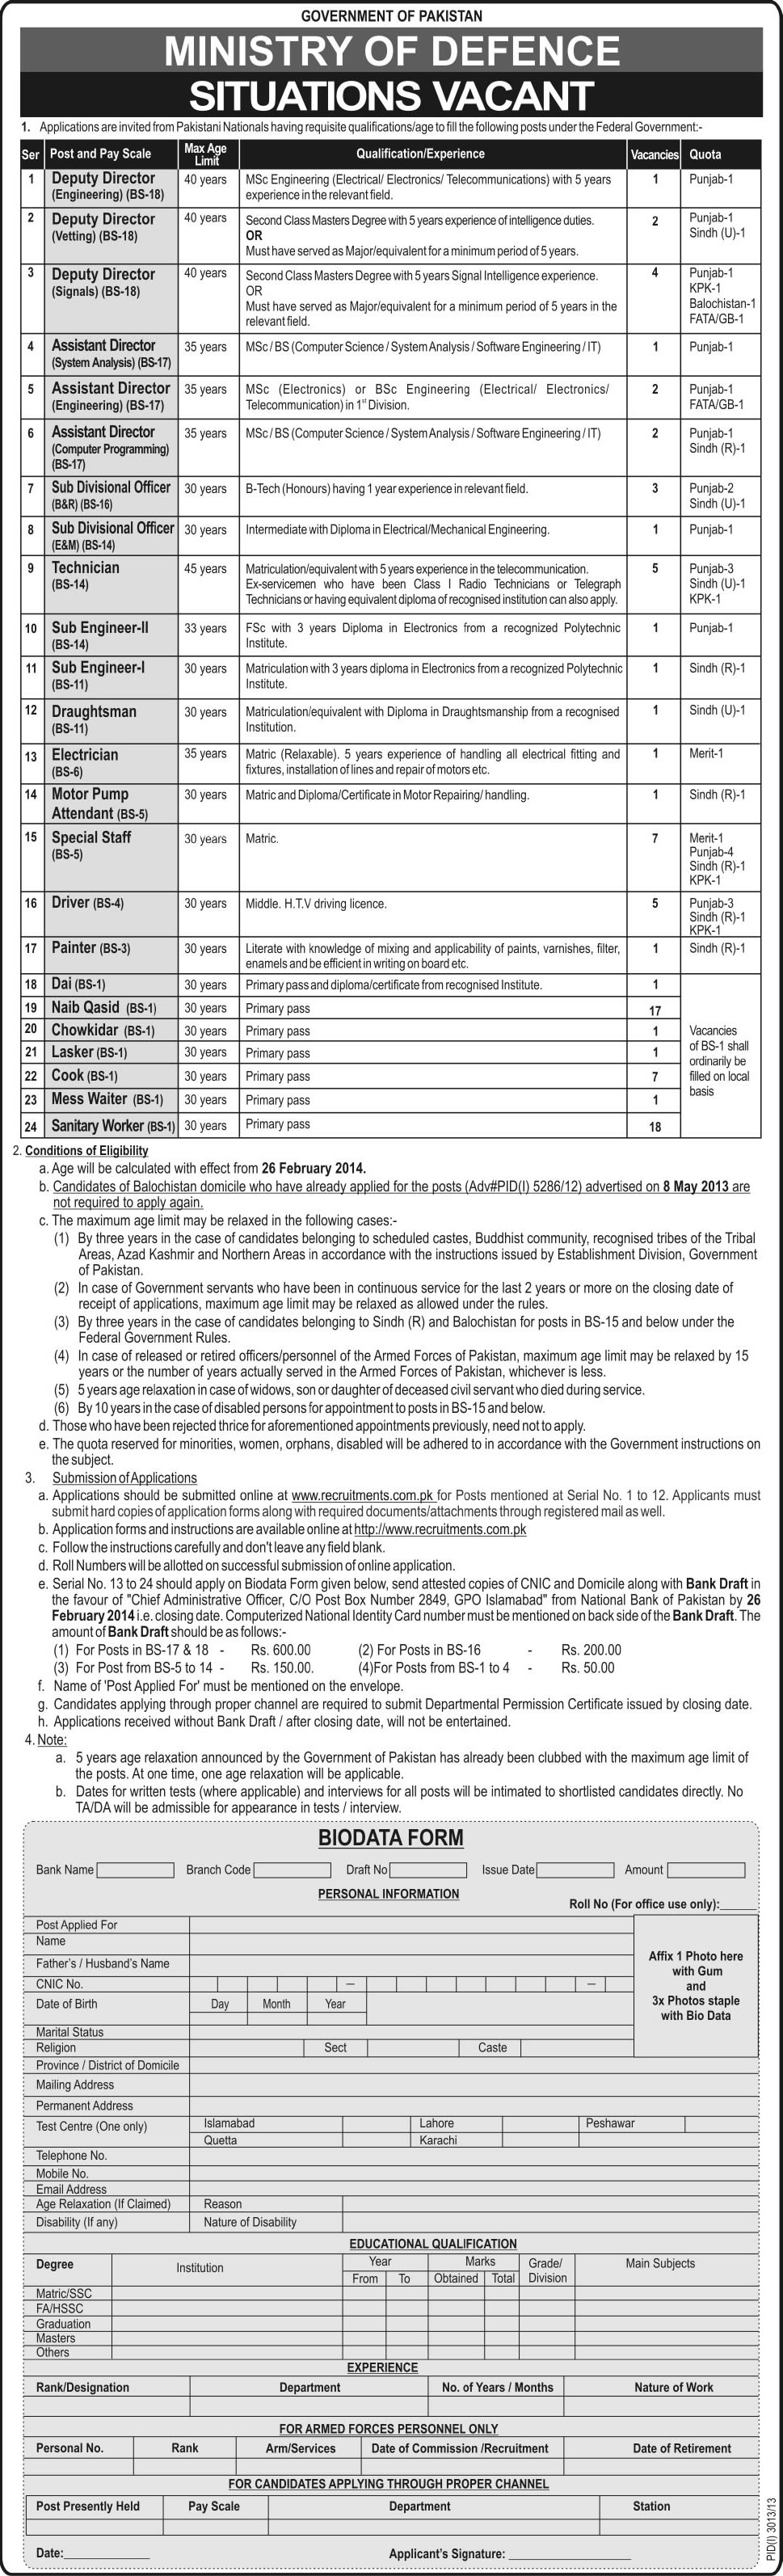 Directorate General Of Immigration Passports Ministry Ministry Of Defence Biodata Form Application Form